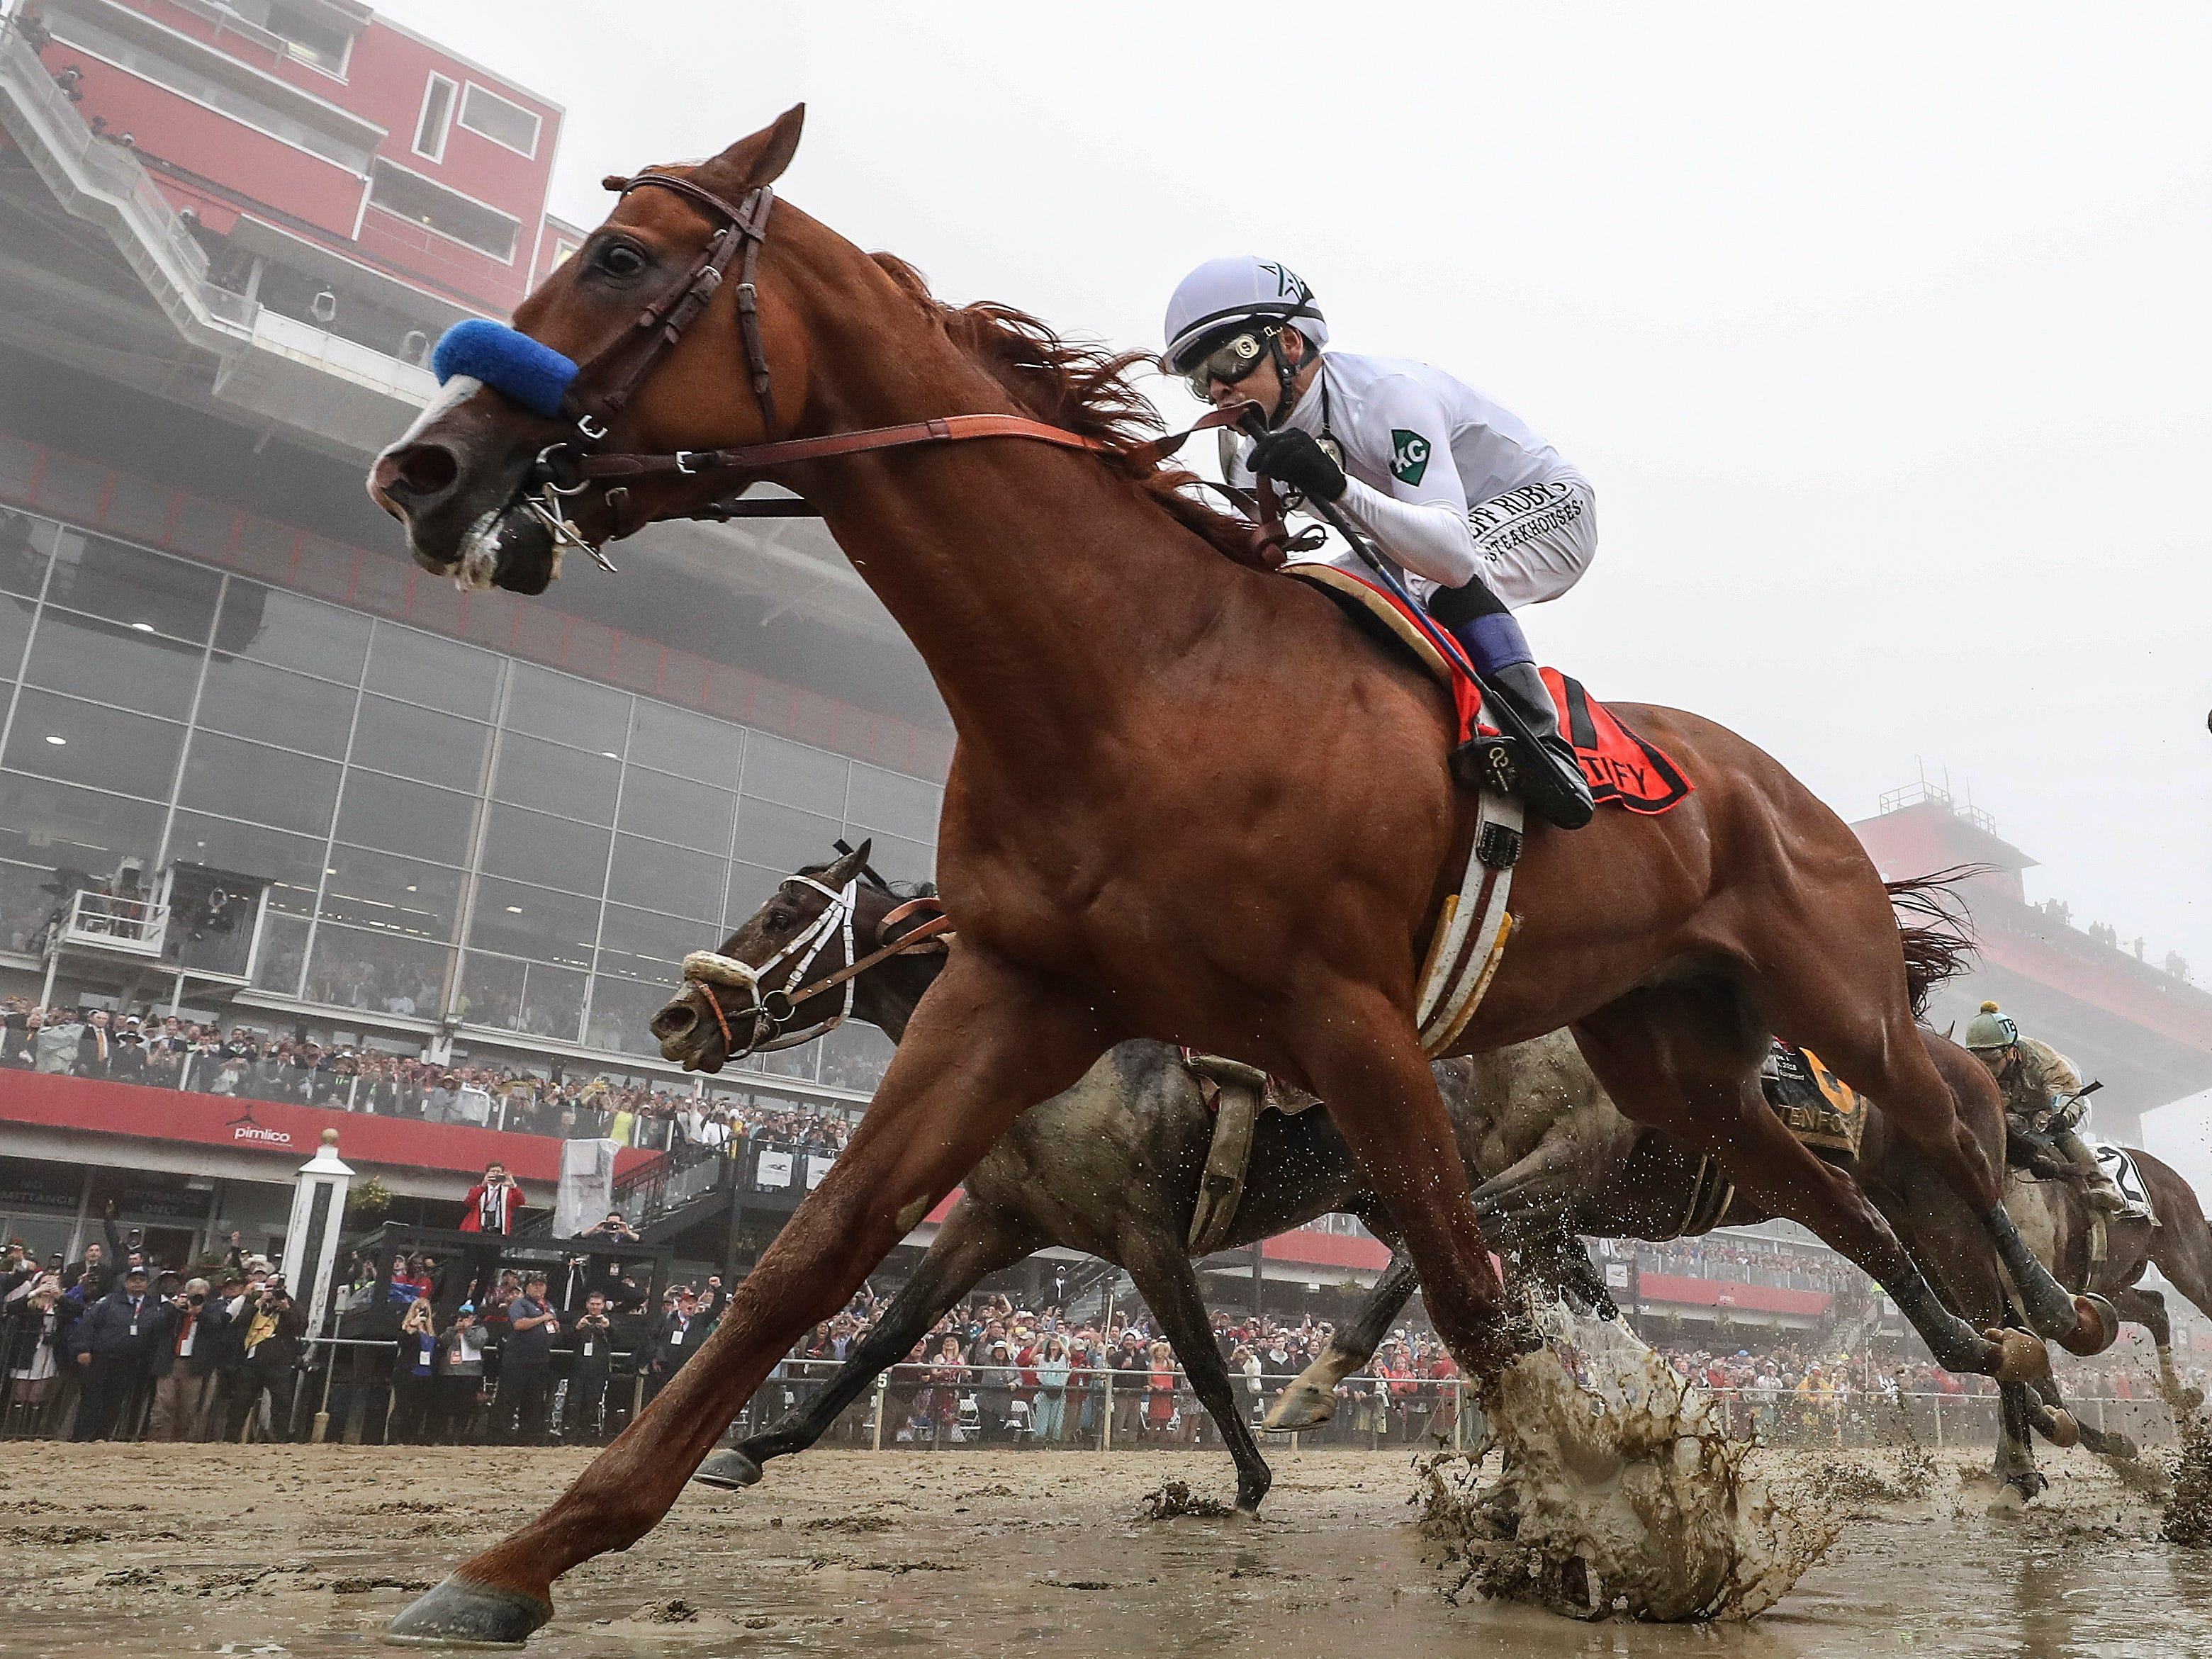 May 19: Mike Smith aboard Justify wins the 143rd Preakness at Pimlico Race Course.